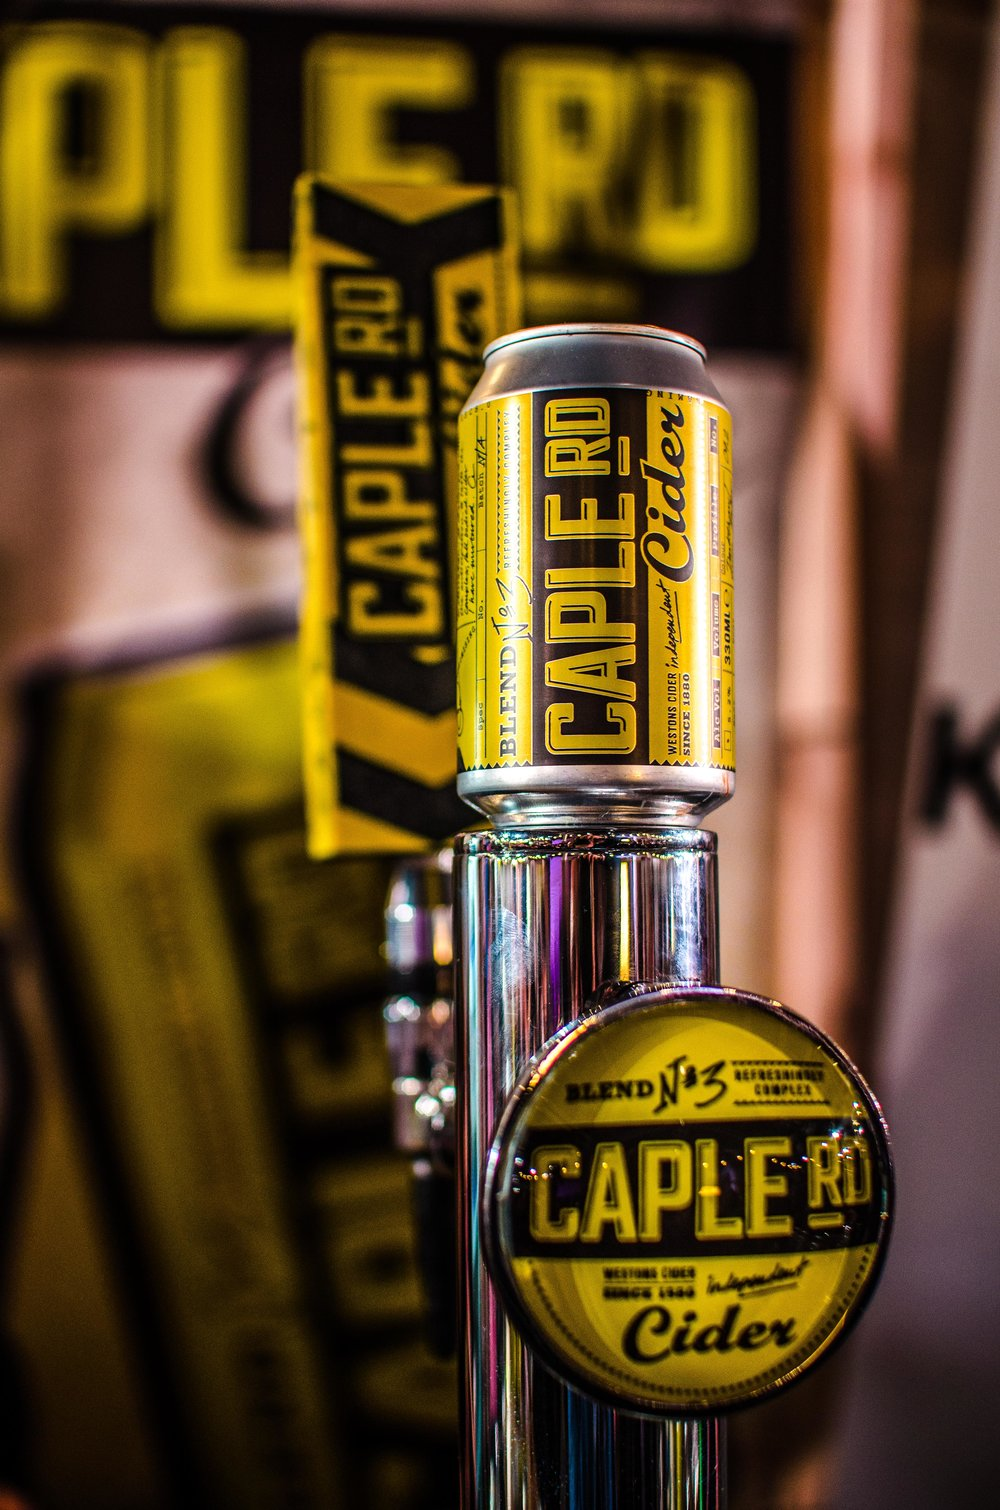 Caple Road Cider - United Kingdon -